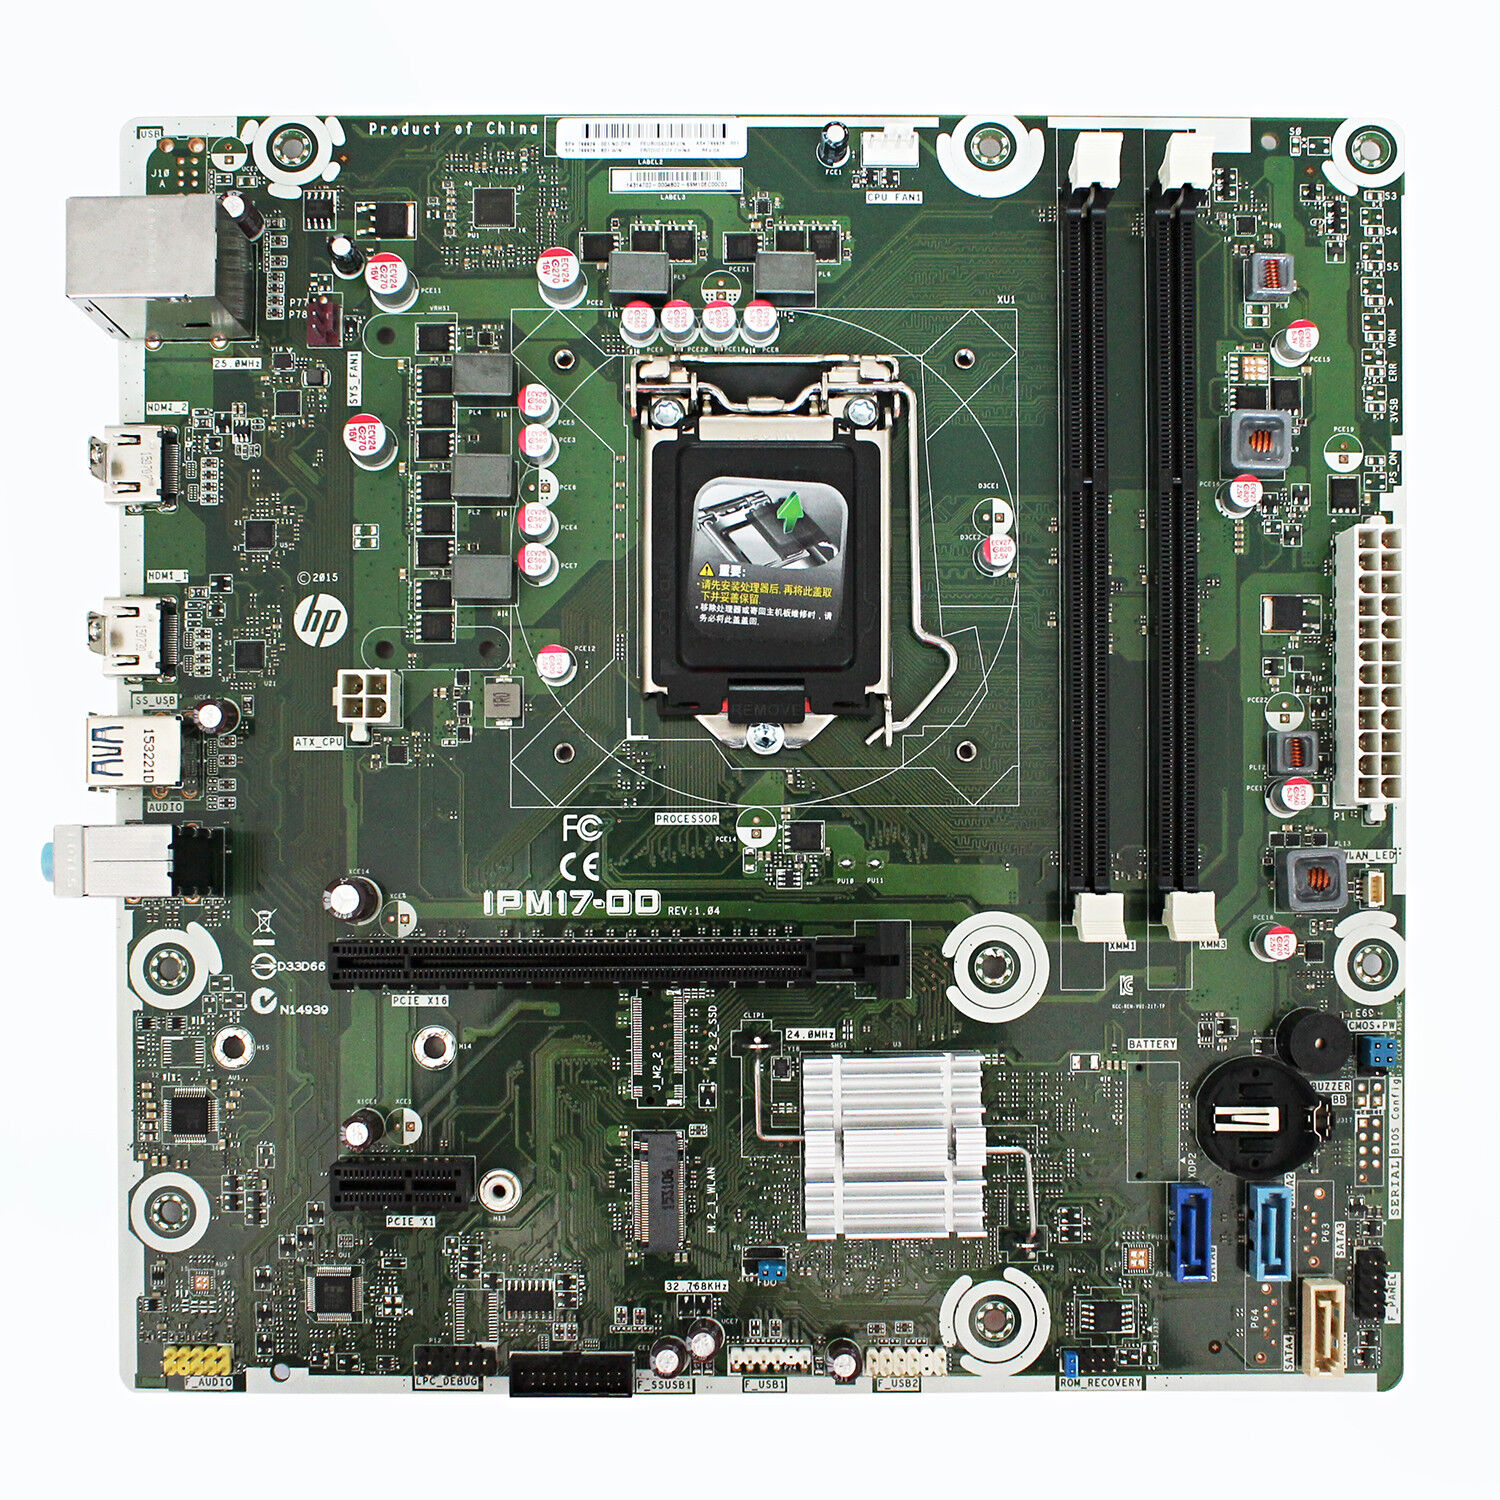 HP IPM17 DD REV 1 04 Desktop motherboard 001 LGA115X DDR3 USB3 0